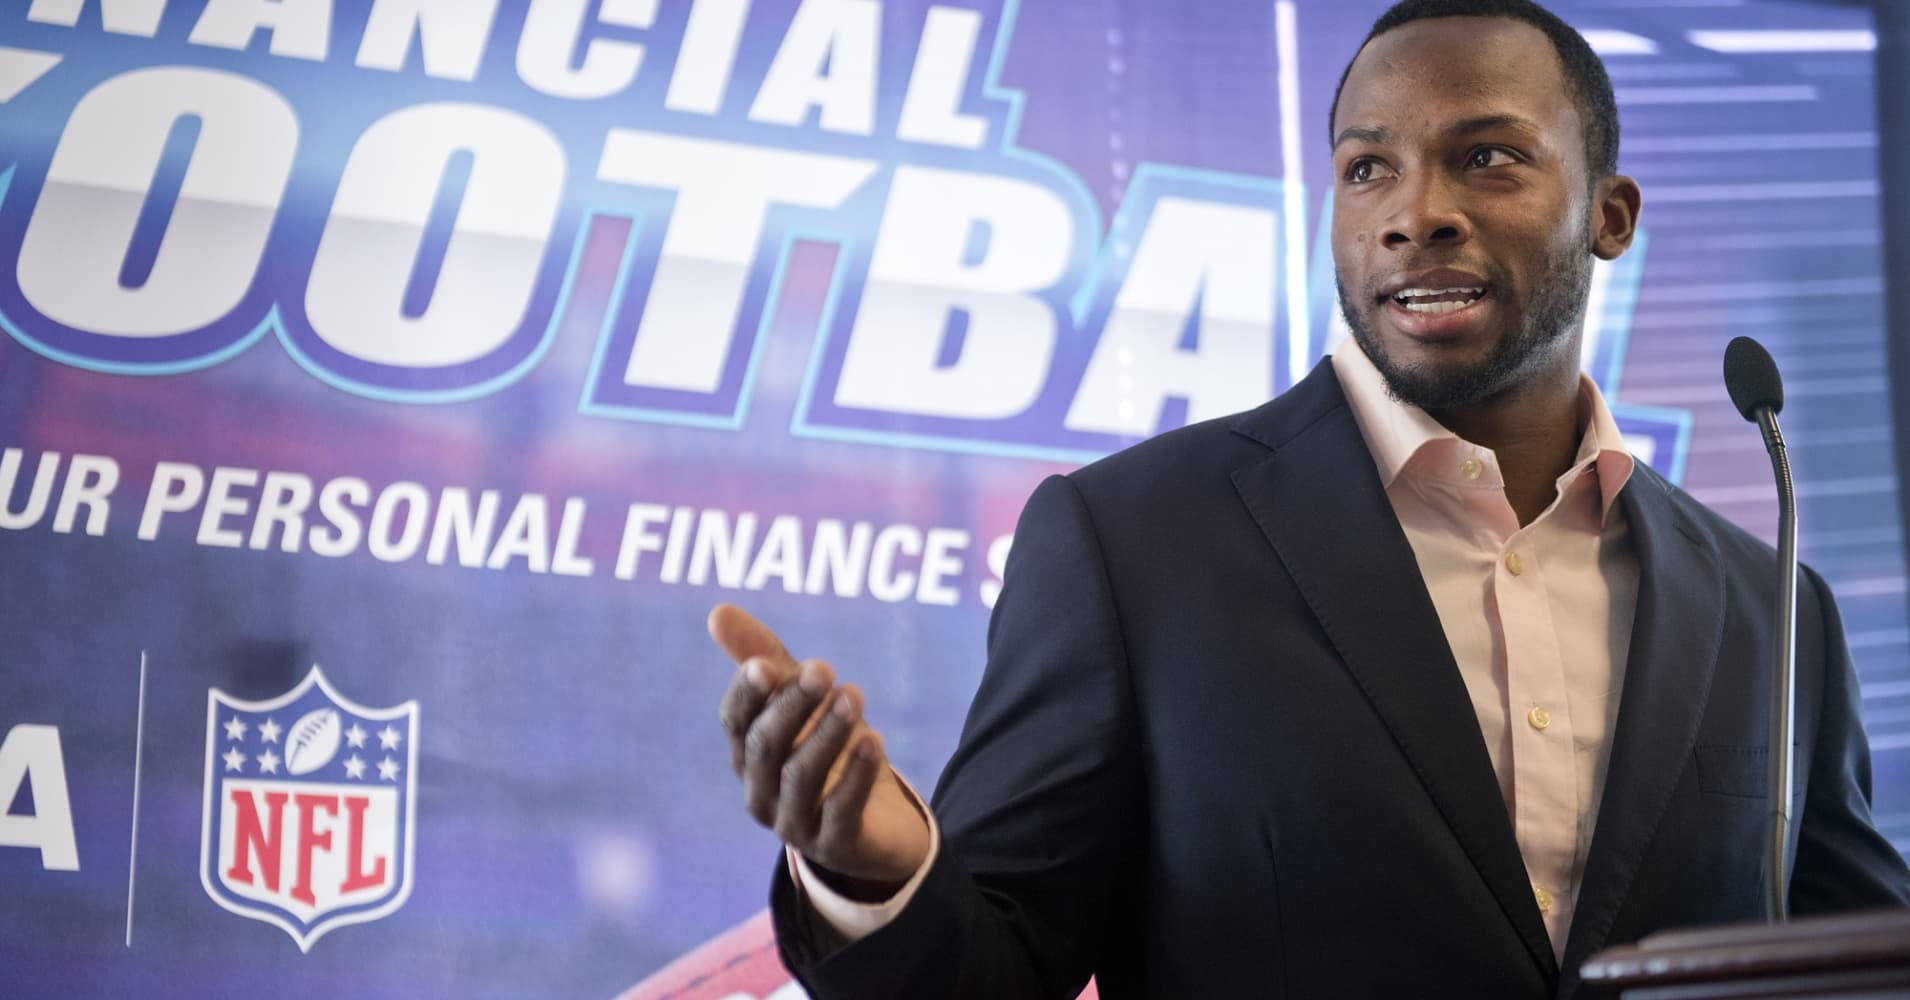 NFL player who lives on $60,000 a year says this book changed his mindset about money